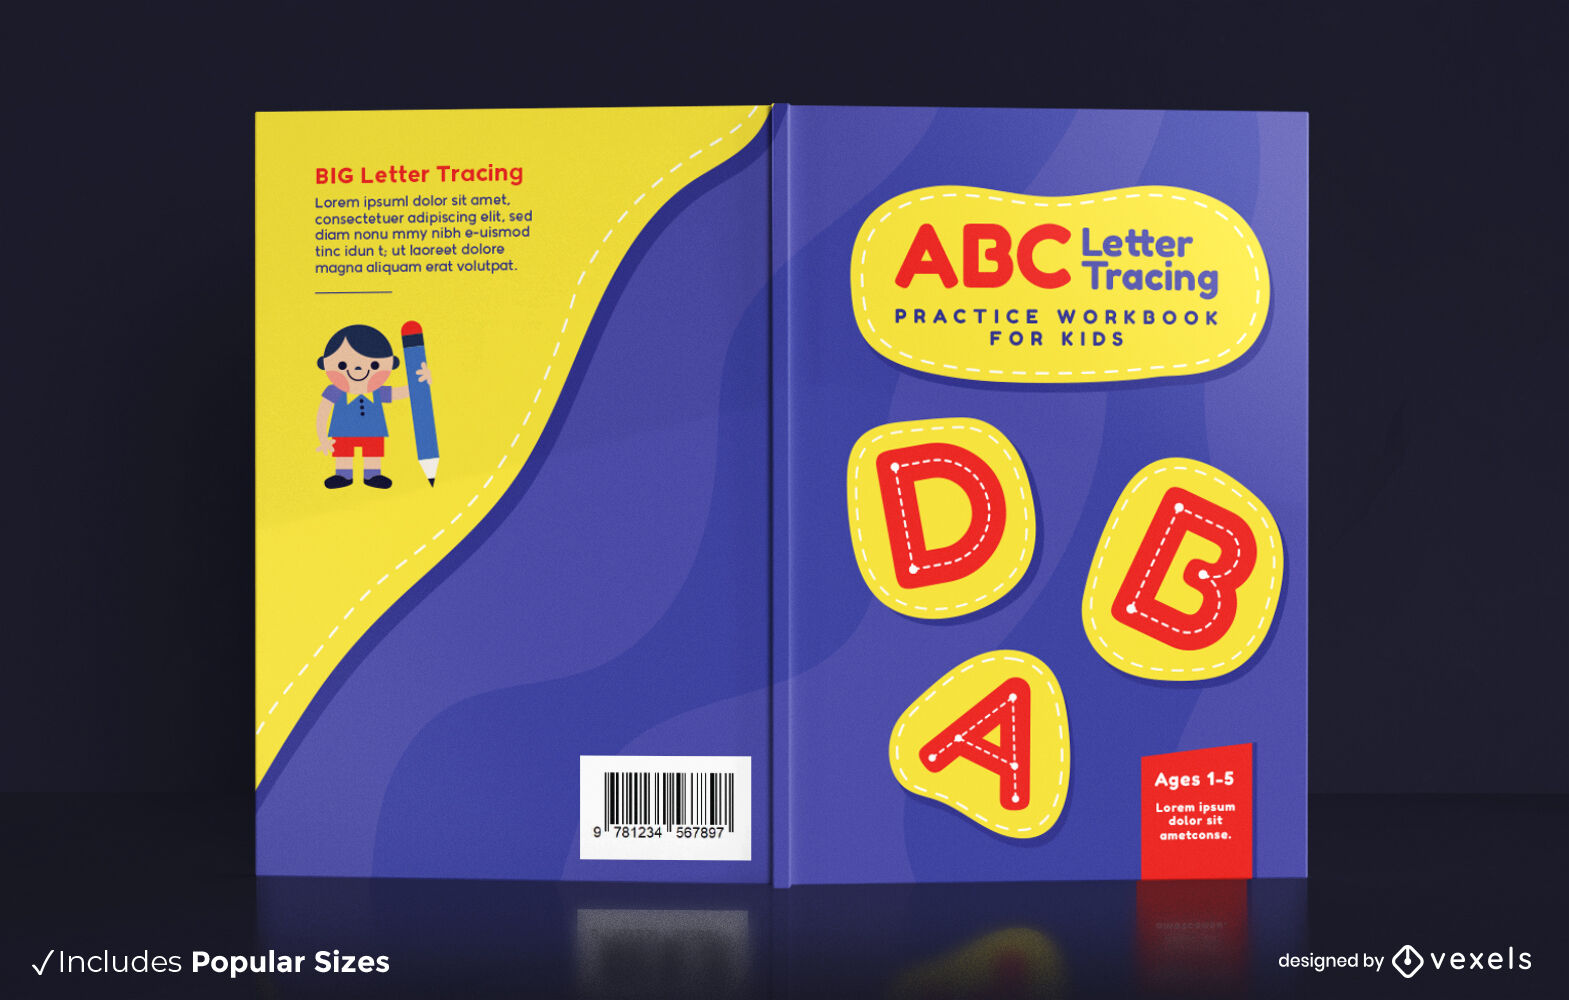 ABC Letter Tracing Kinderbuch-Cover-Design